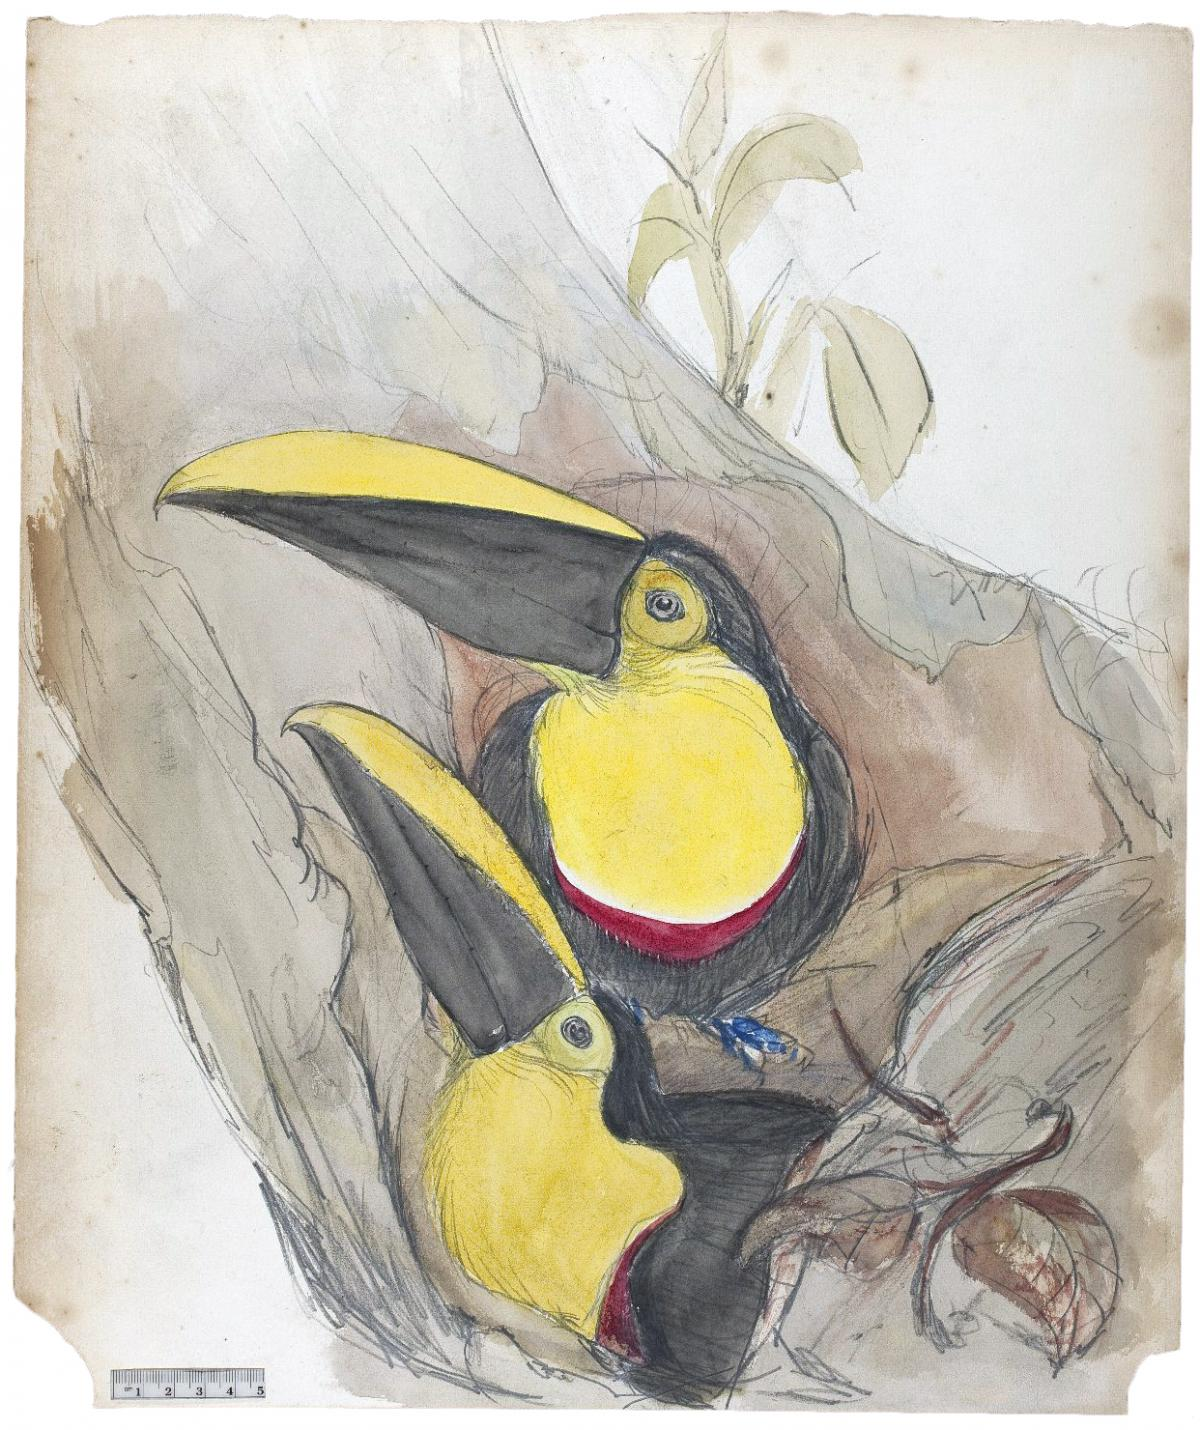 A pair of black and yellow toucans, sitting on a branch